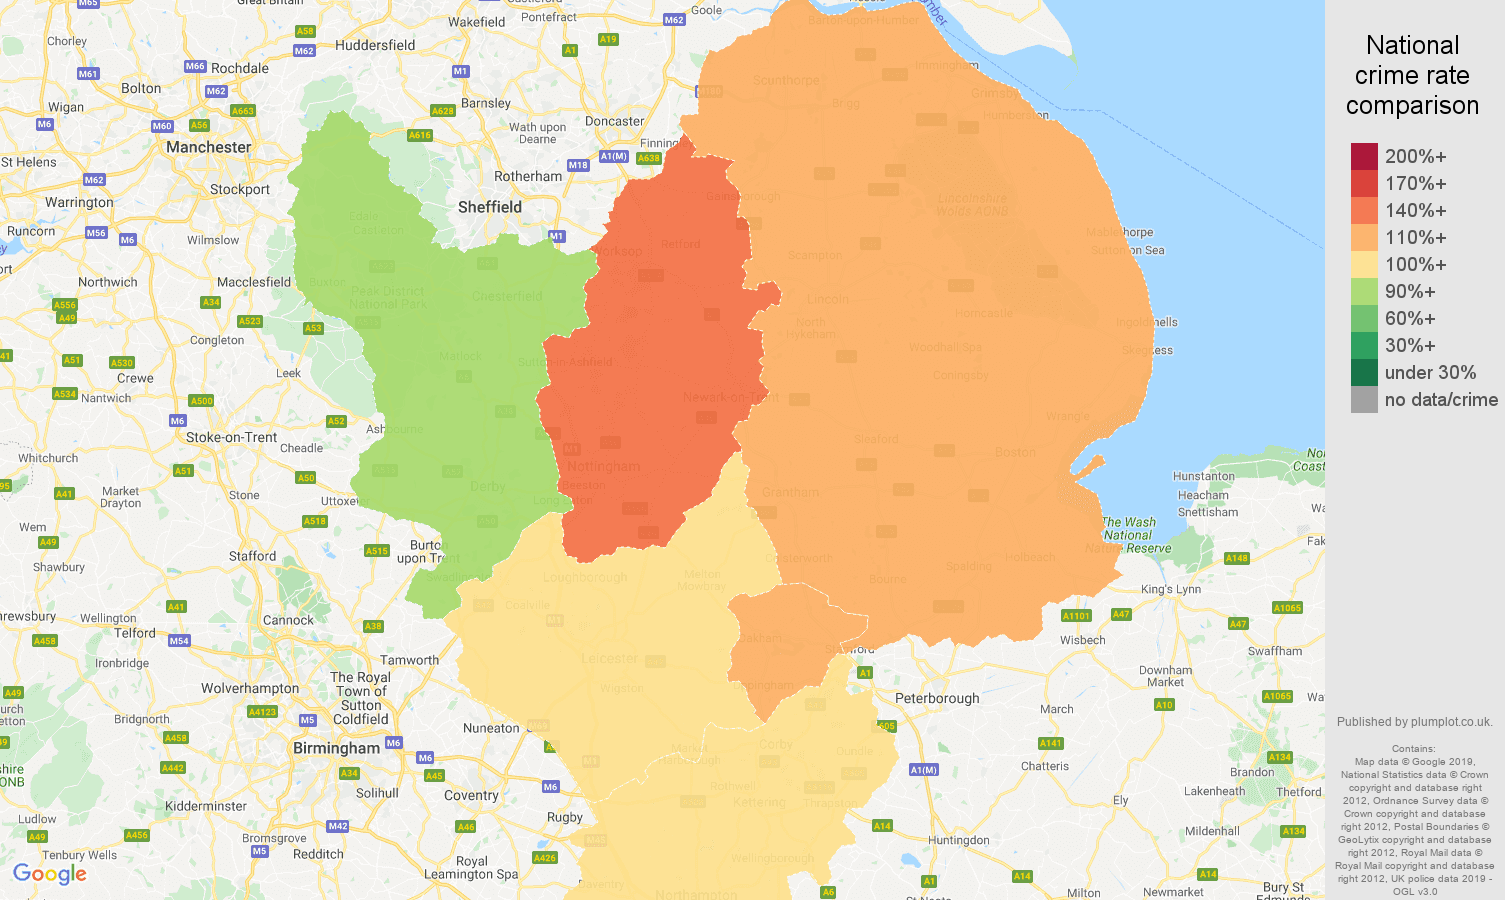 East Midlands other crime rate comparison map